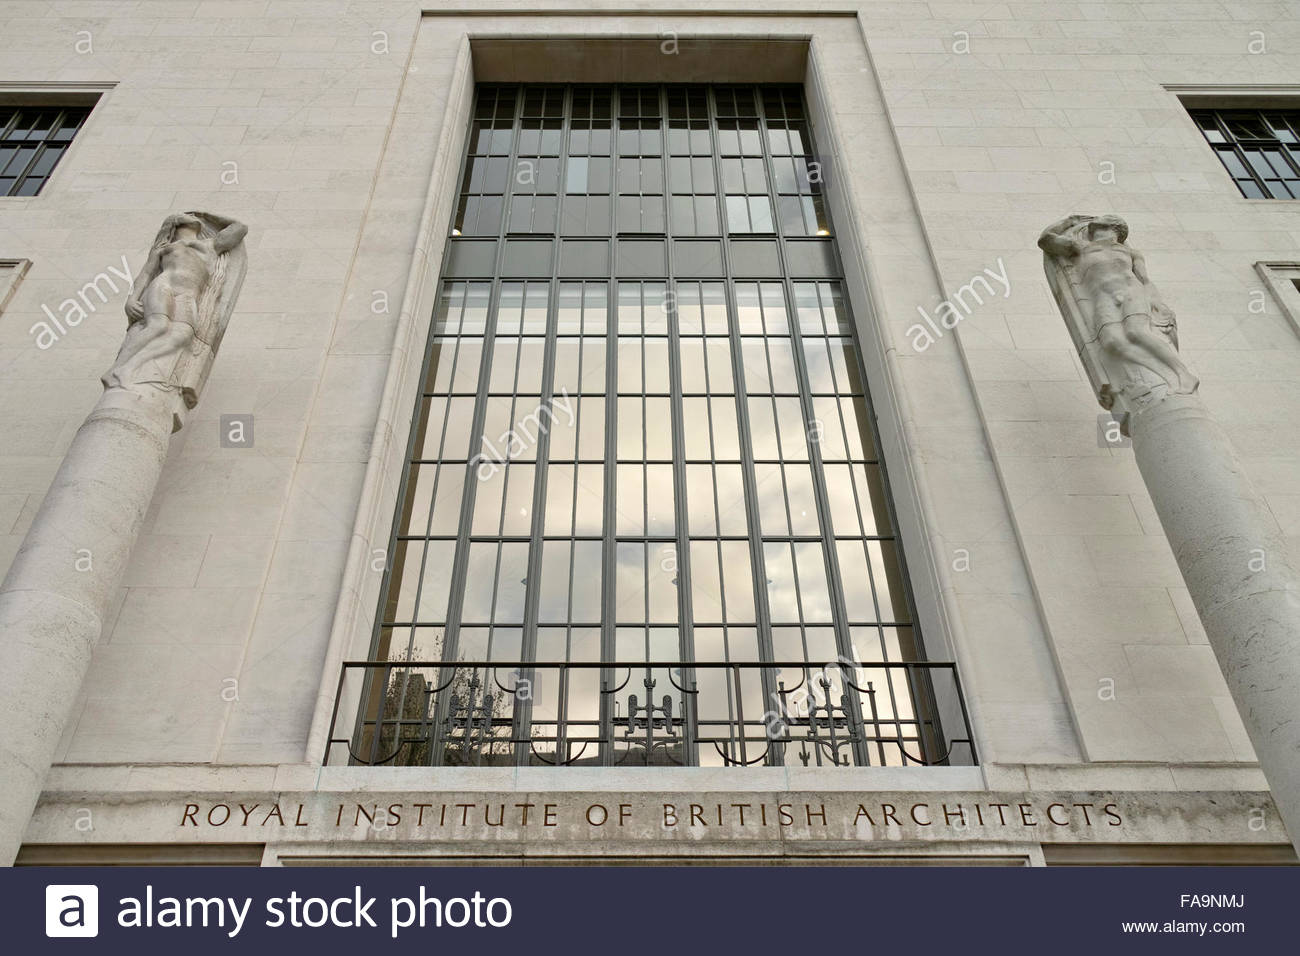 Facade of 66 Portland Place, the Royal Institute of British Architects building: London. - Stock Image